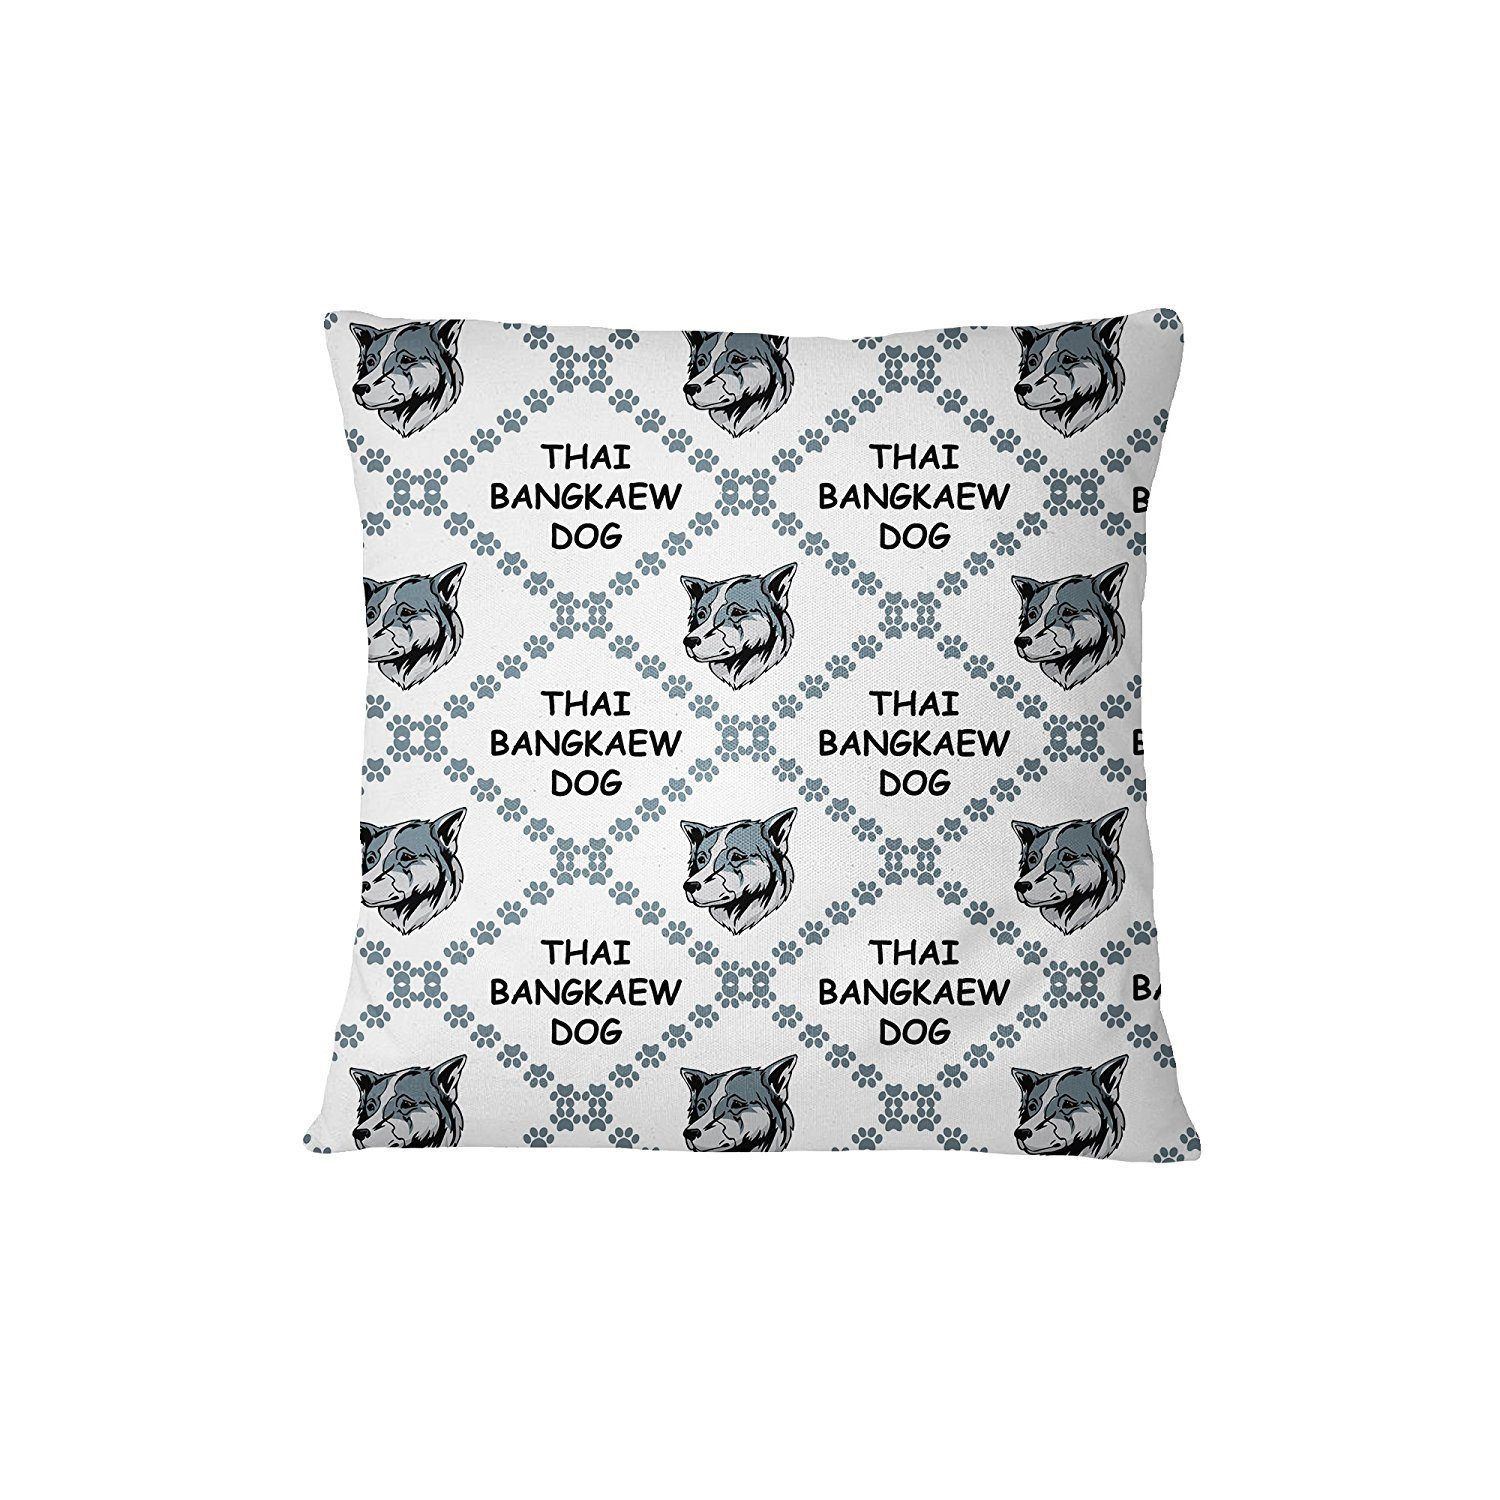 Thai Bangkaew Dog Dog Paws Sofa Bed Home Decor Pillow Cover Pillow & Cover Set RENJUNDUN by RENJUNDUN